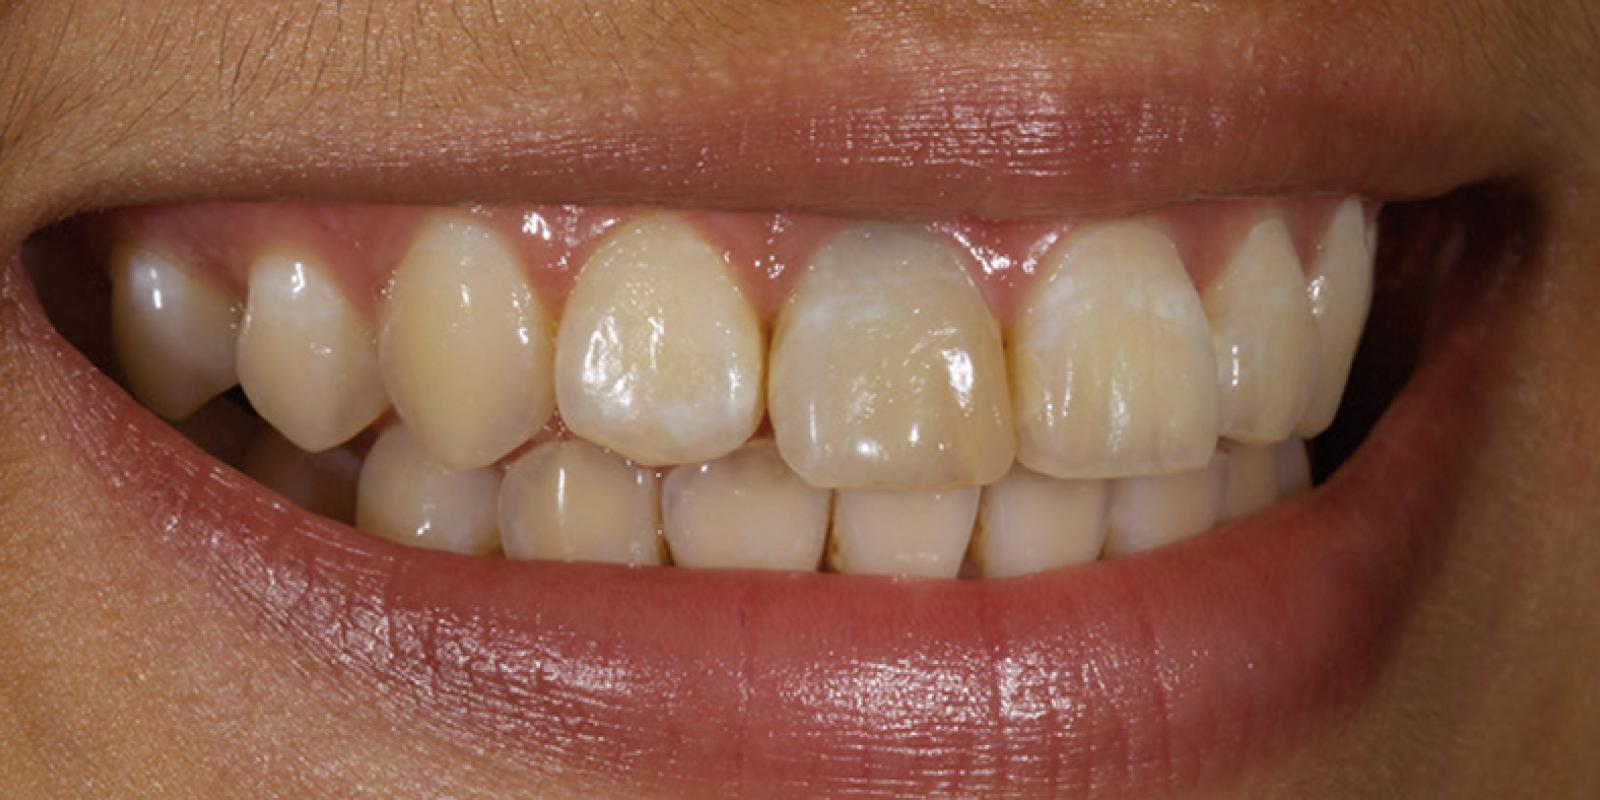 Dr. Jason Smithson - Direct Resin Restorations in the Anterior Dentition